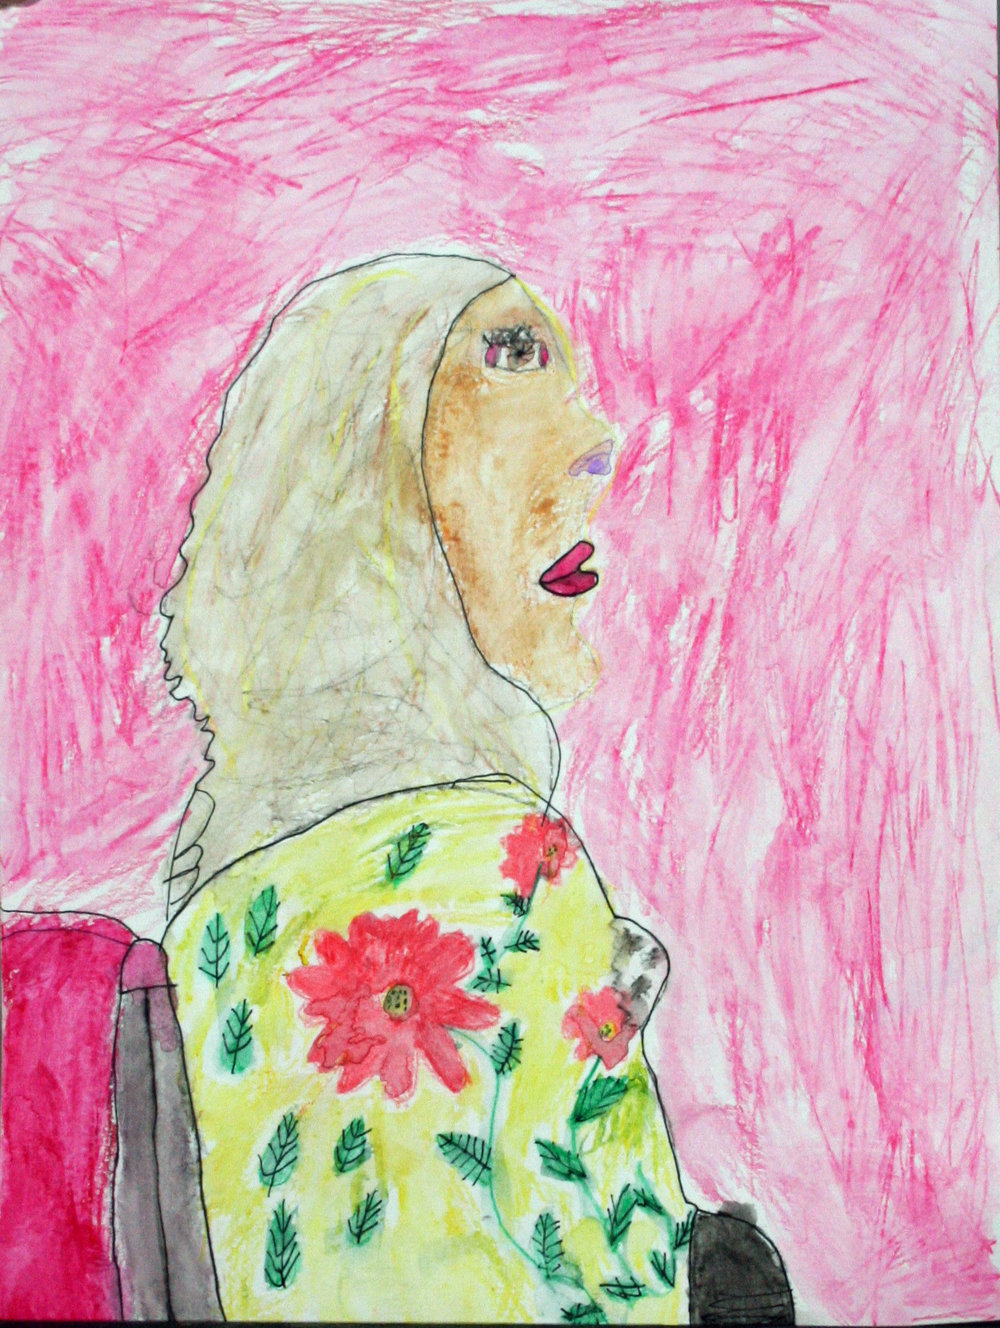 Winnie Averre did this crayon drawing.